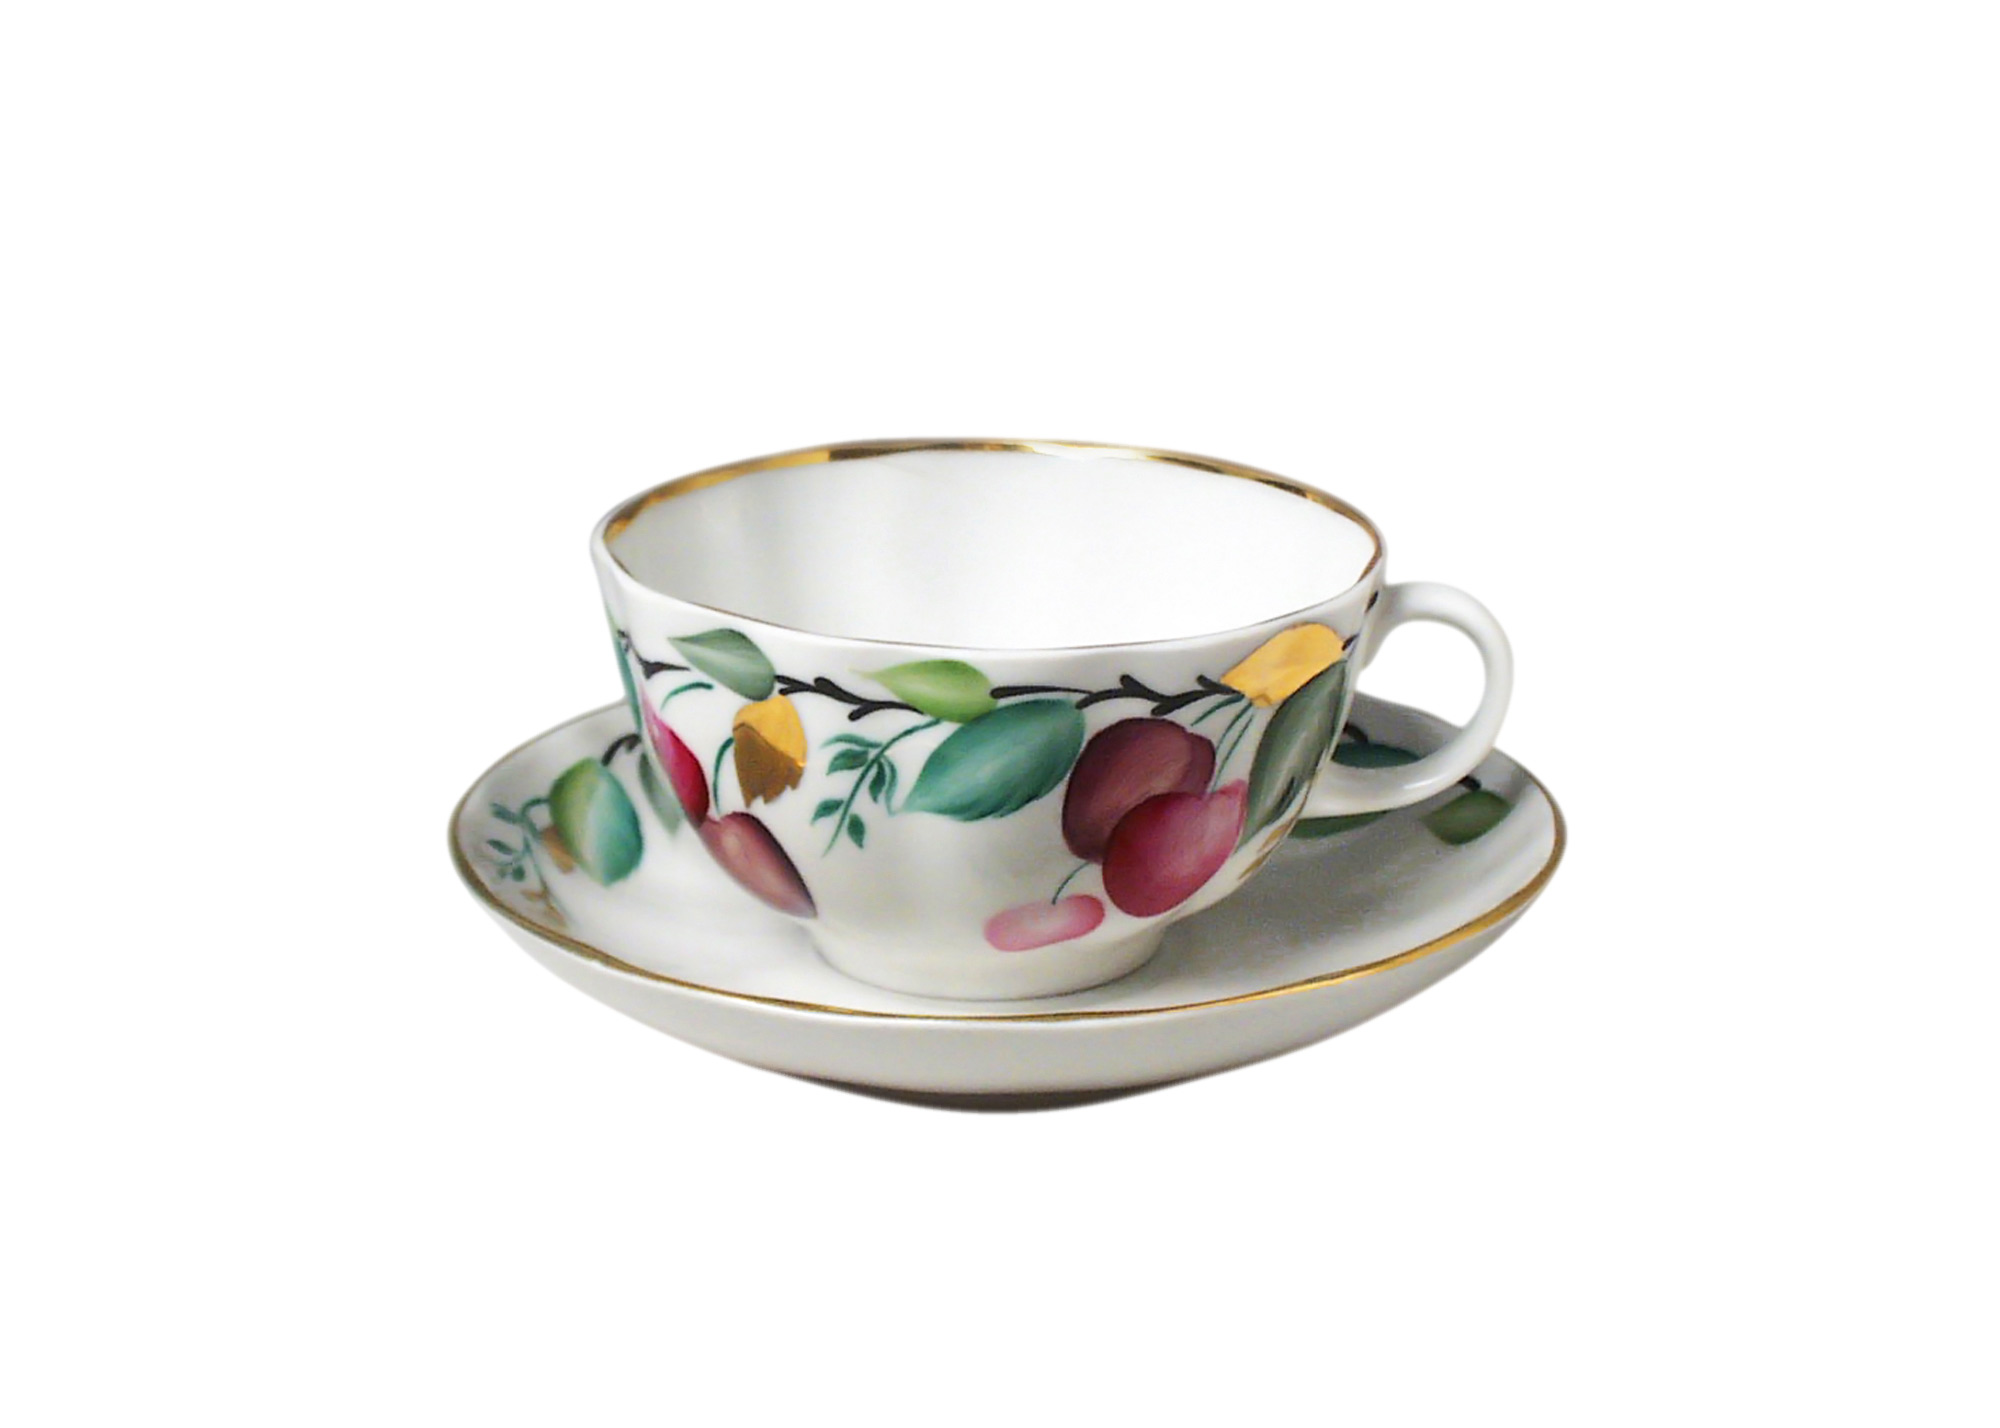 Buy Cherry Tea Cup and Saucer at GoldenCockerel.com